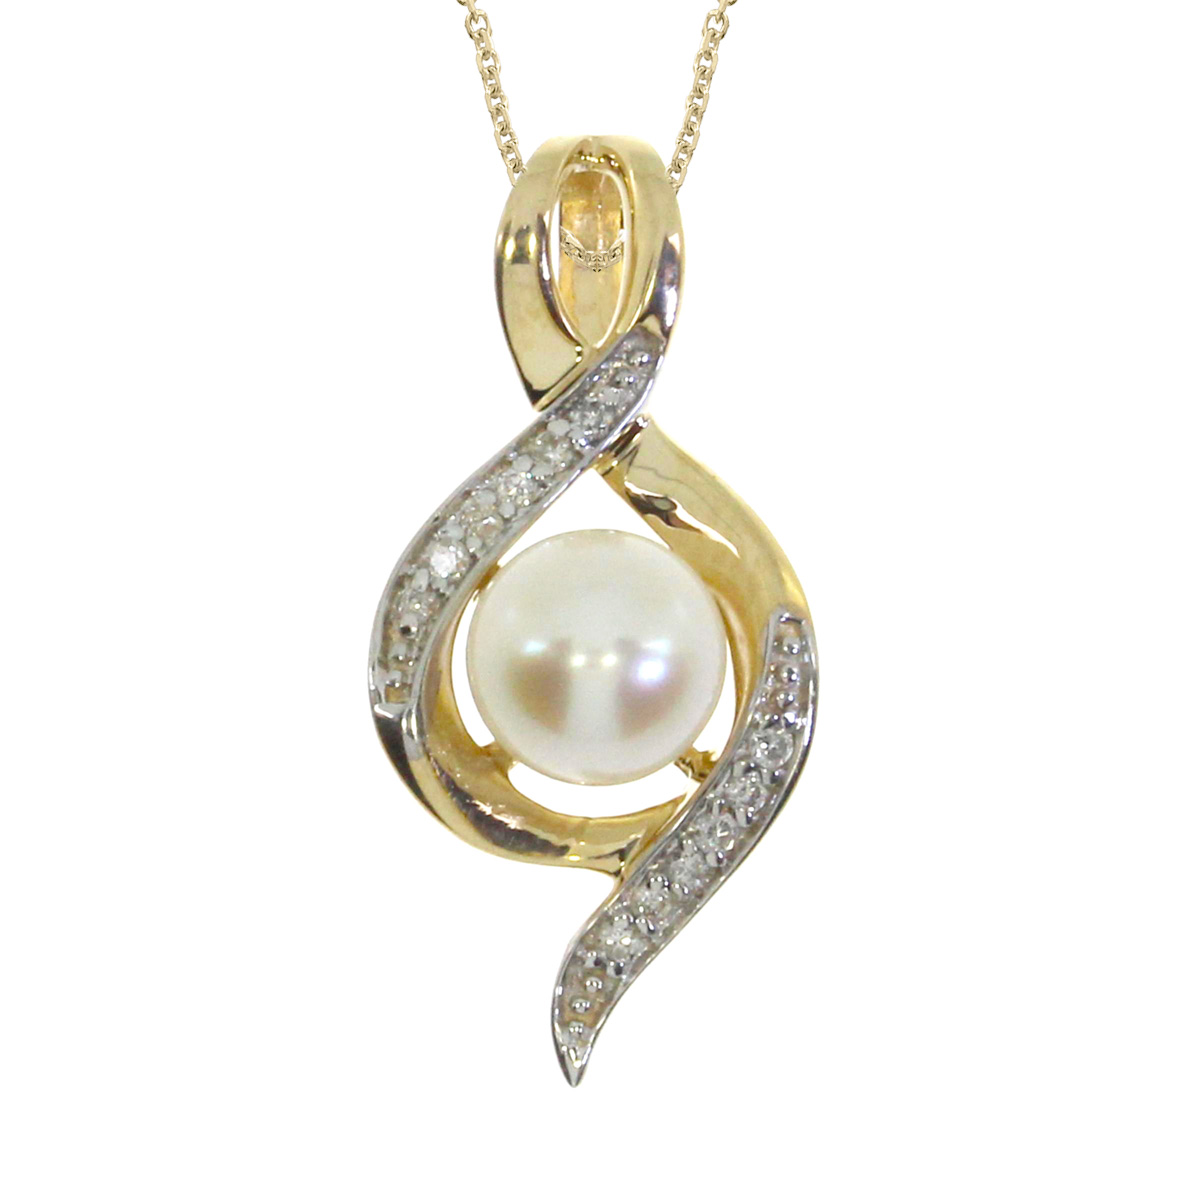 Gorgeous 14k yellow gold fashion pendant with an elegant 6 mm pearl and shimmering diamonds set in 14k yellow gold.